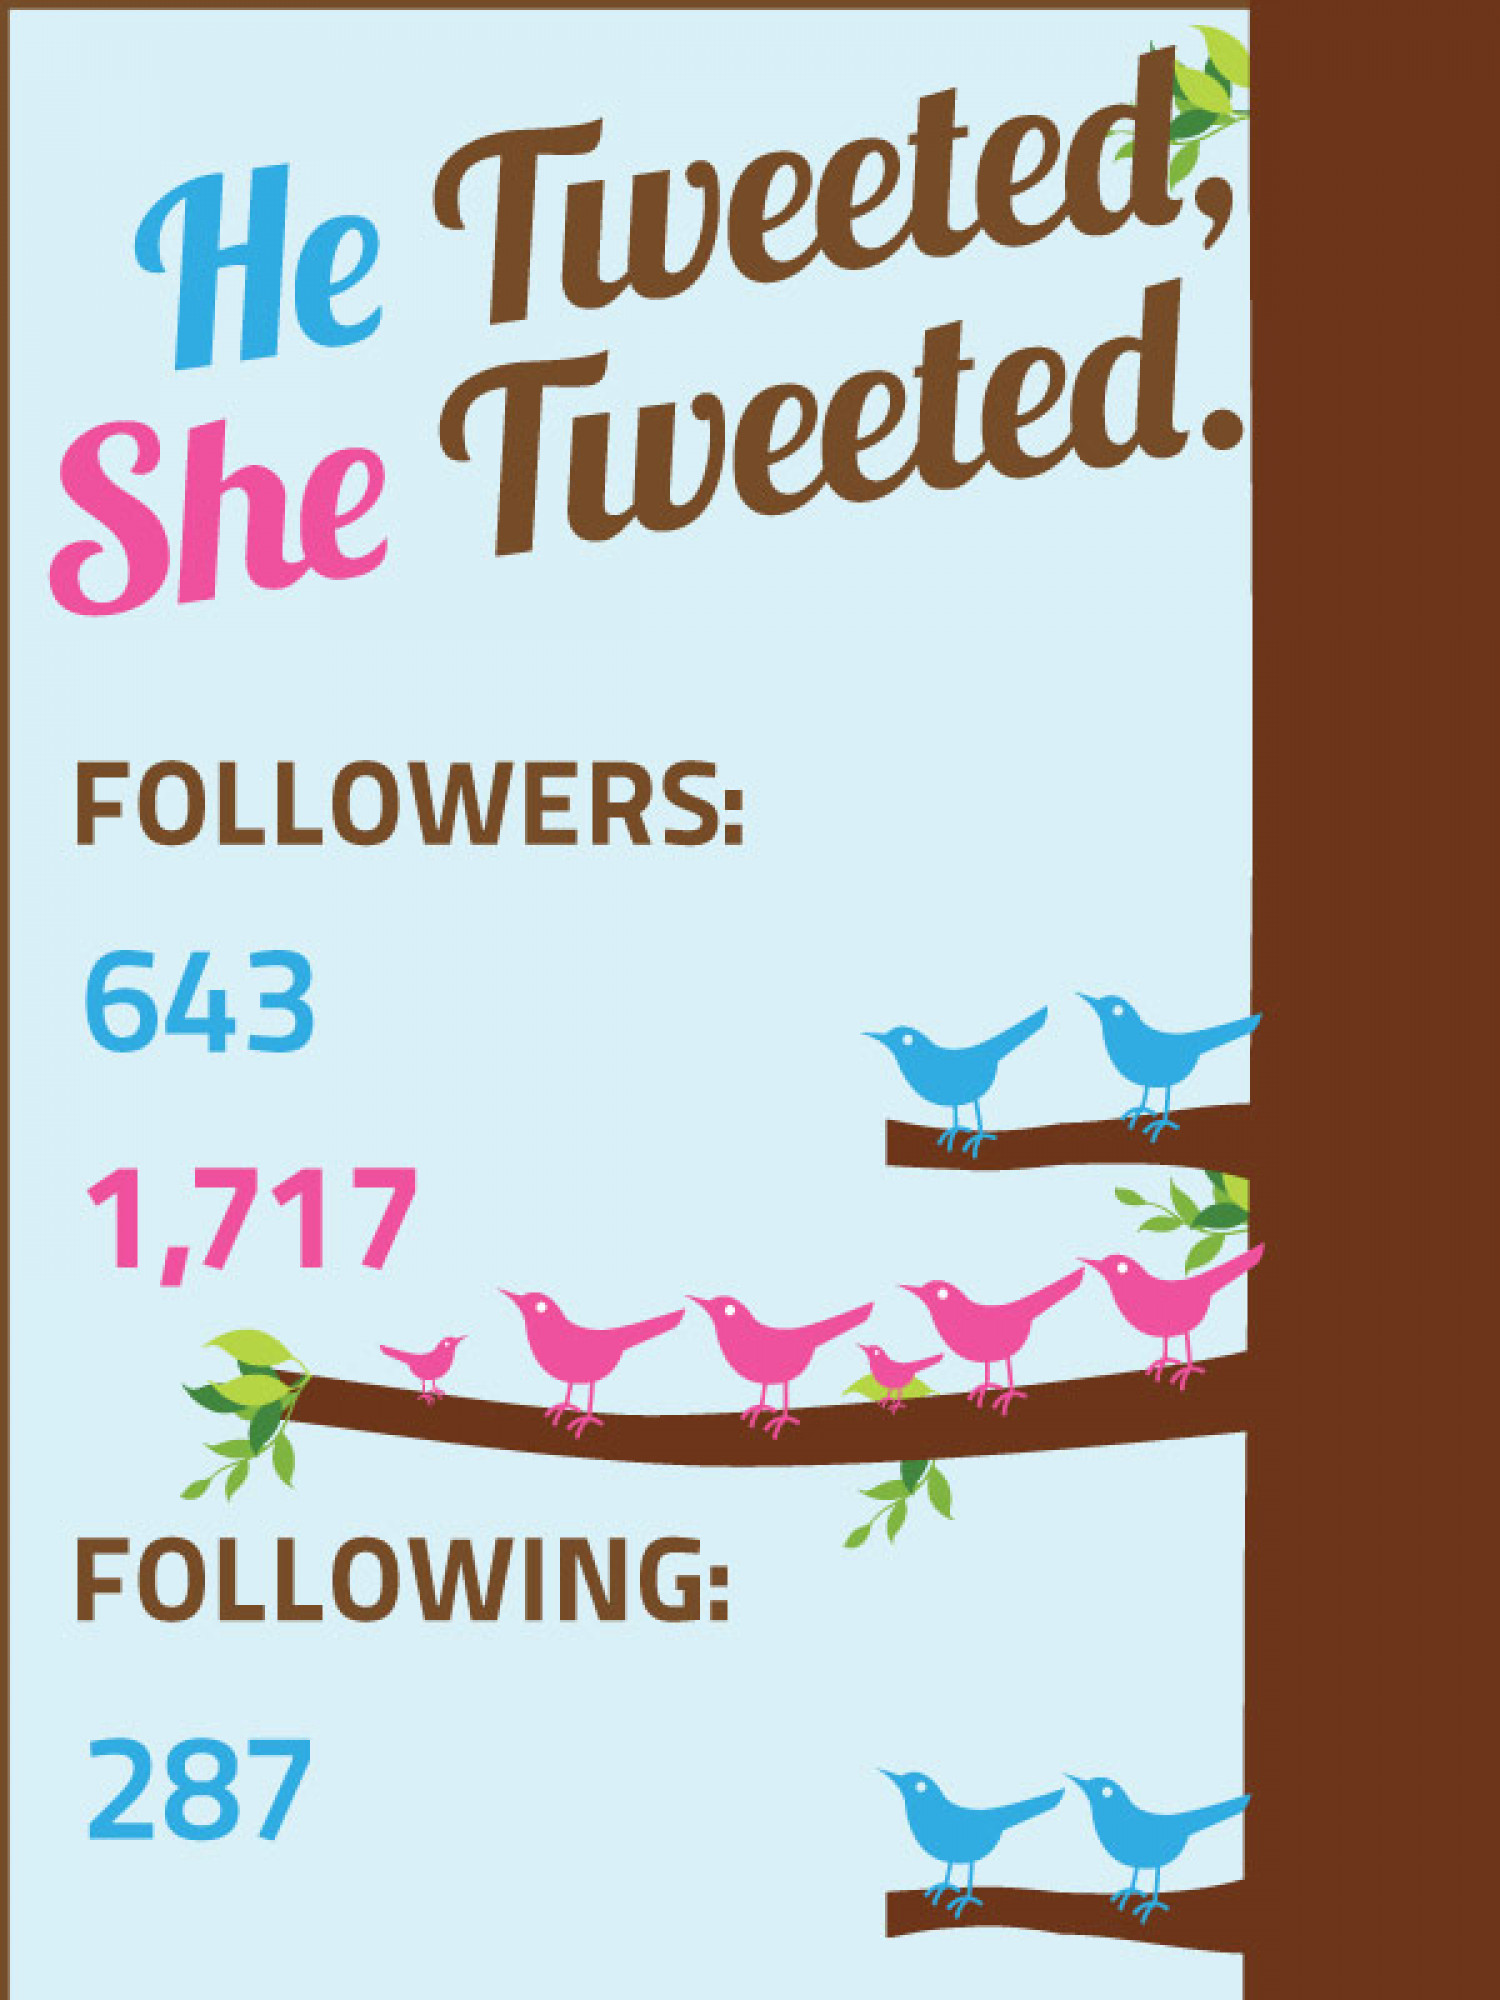 The Gender Differences On Twitter In Data Infographic